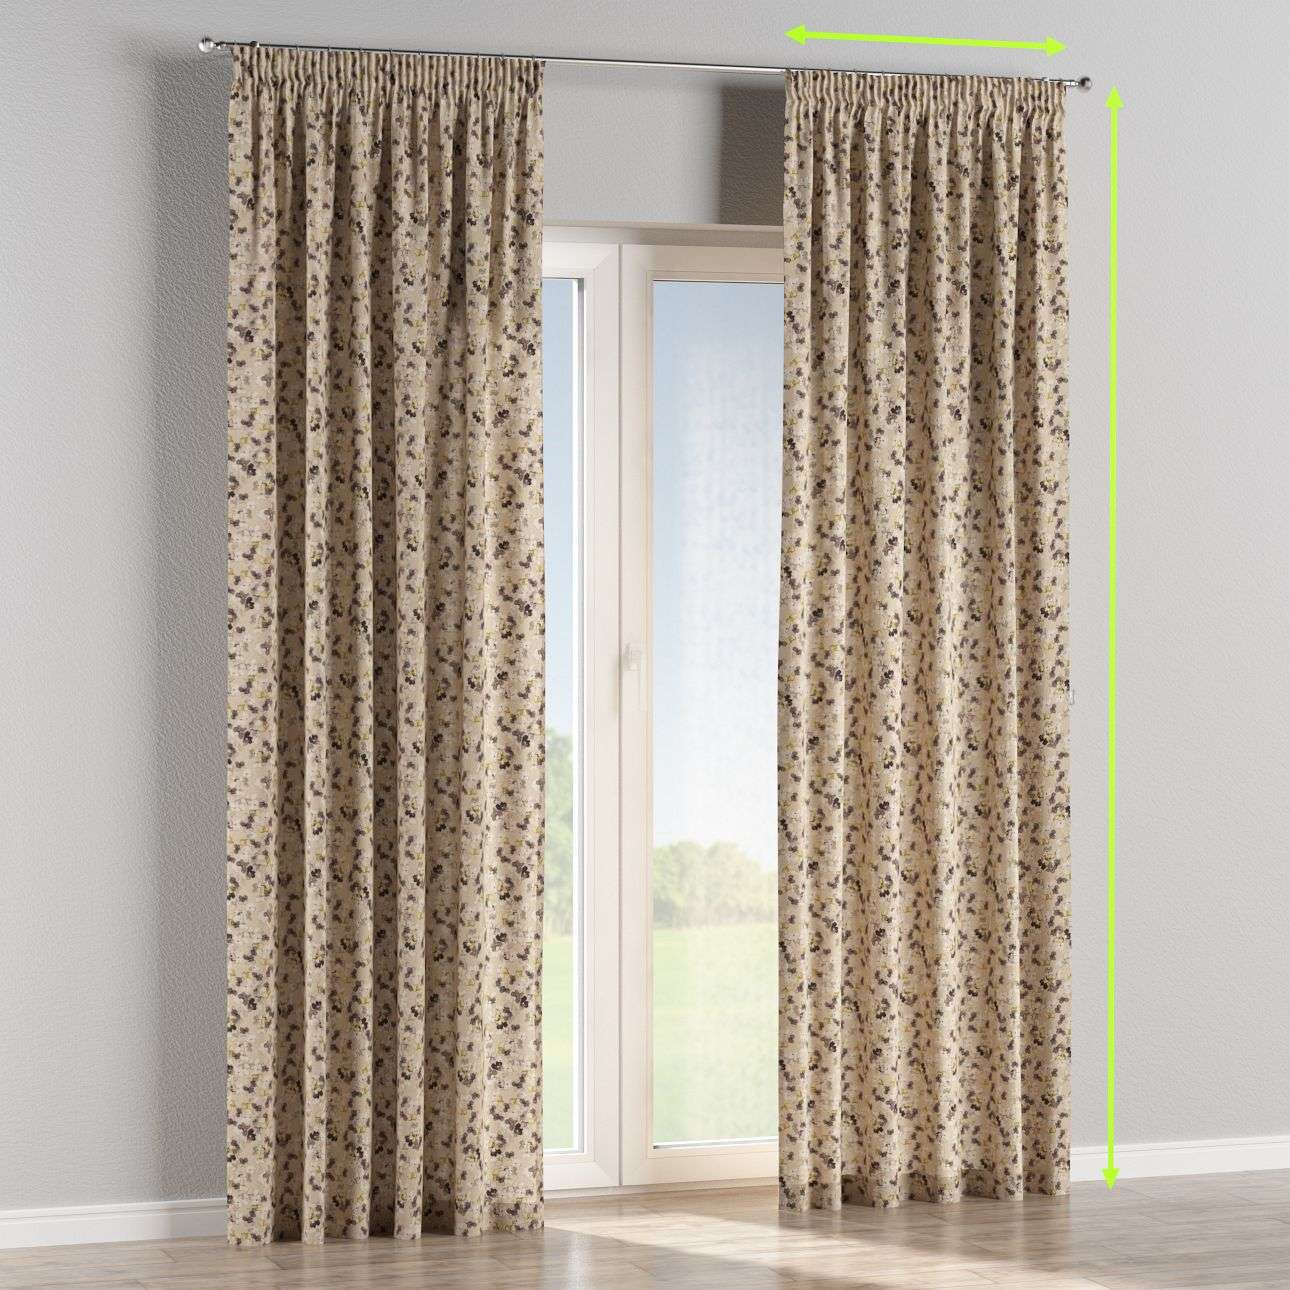 Pencil pleat curtains in collection Londres, fabric: 140-48